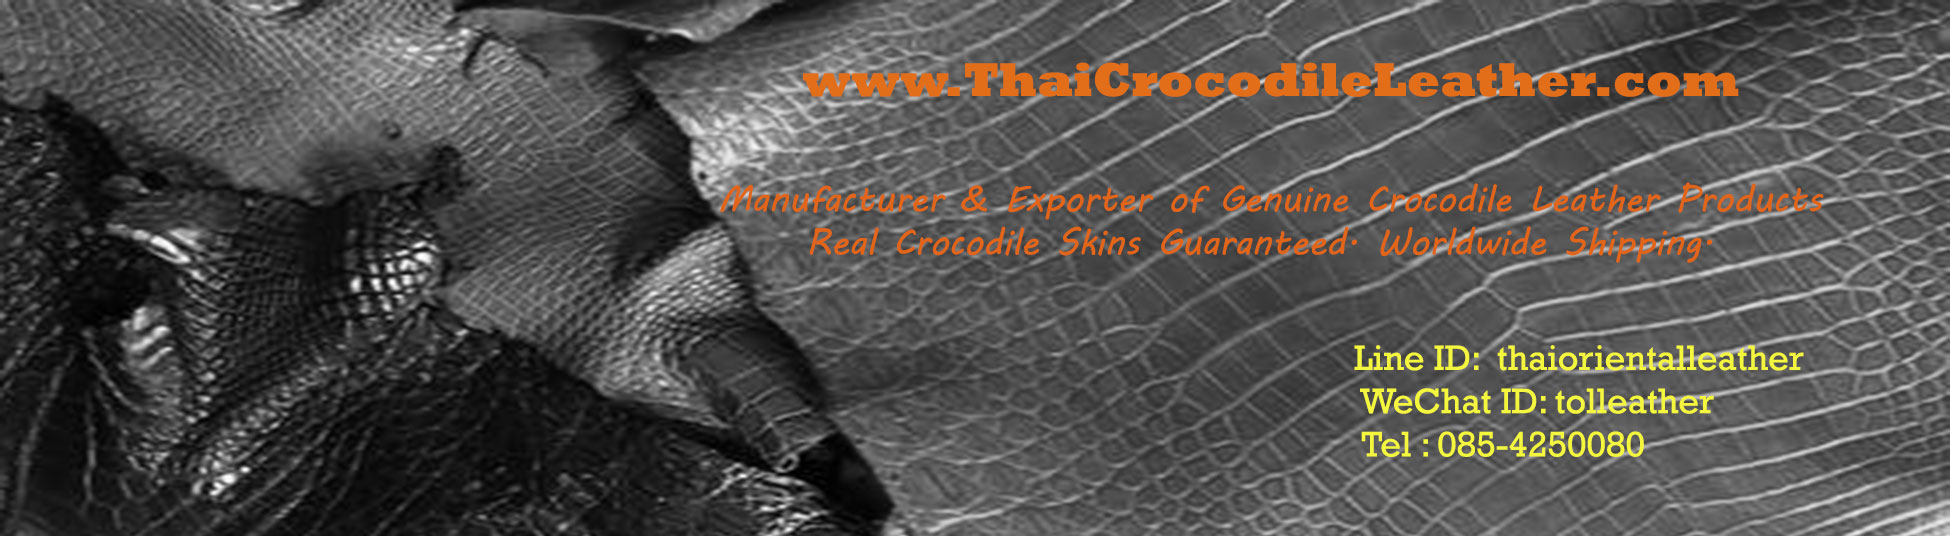 Thai Crocodile Leather